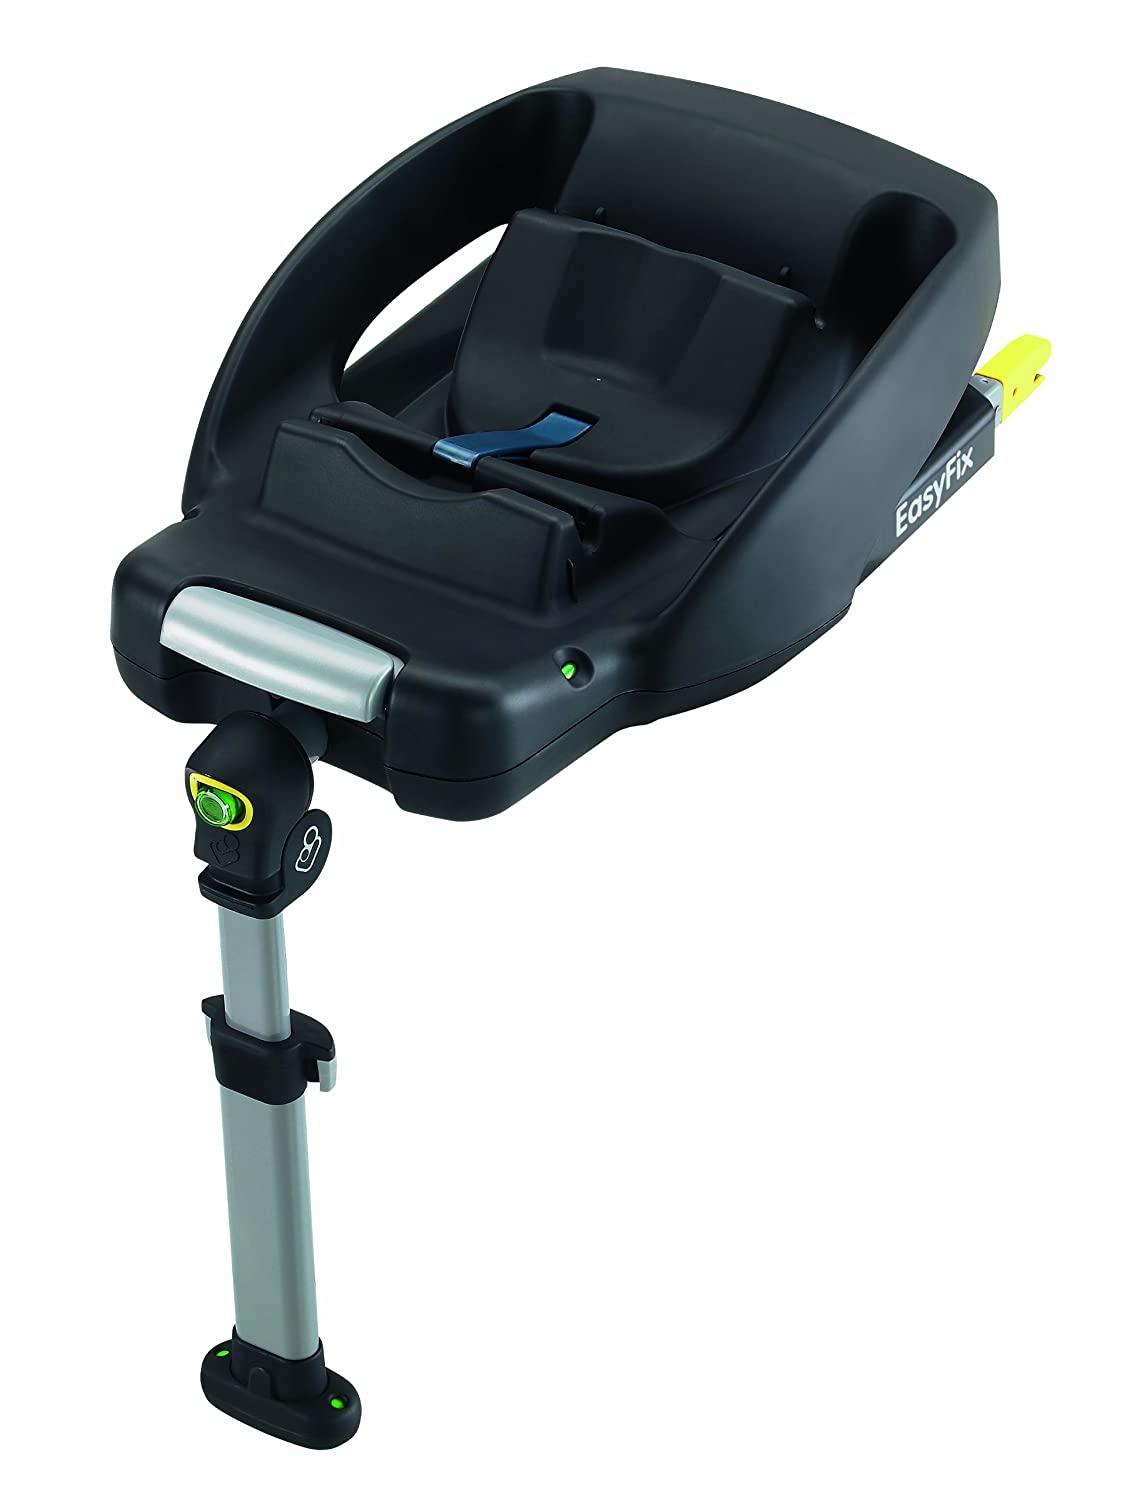 Maxi-Cosi EasyFix Car Seat Base ISOFix & Belt